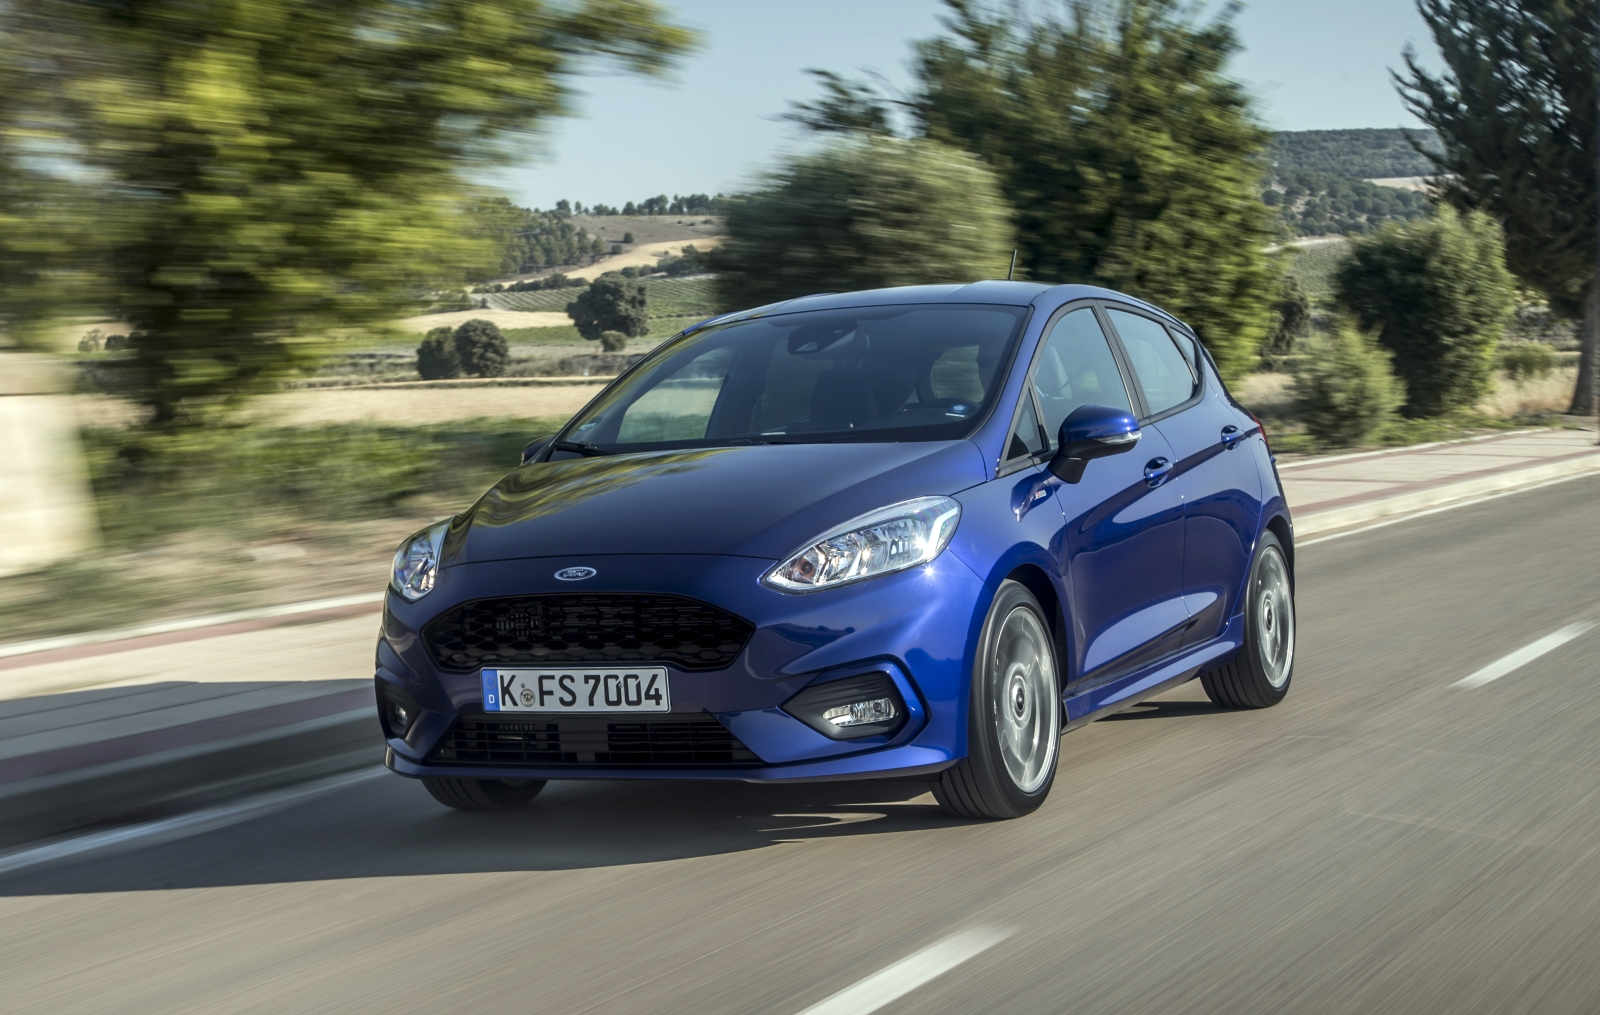 prijzen ford fiesta st line en vignale. Black Bedroom Furniture Sets. Home Design Ideas